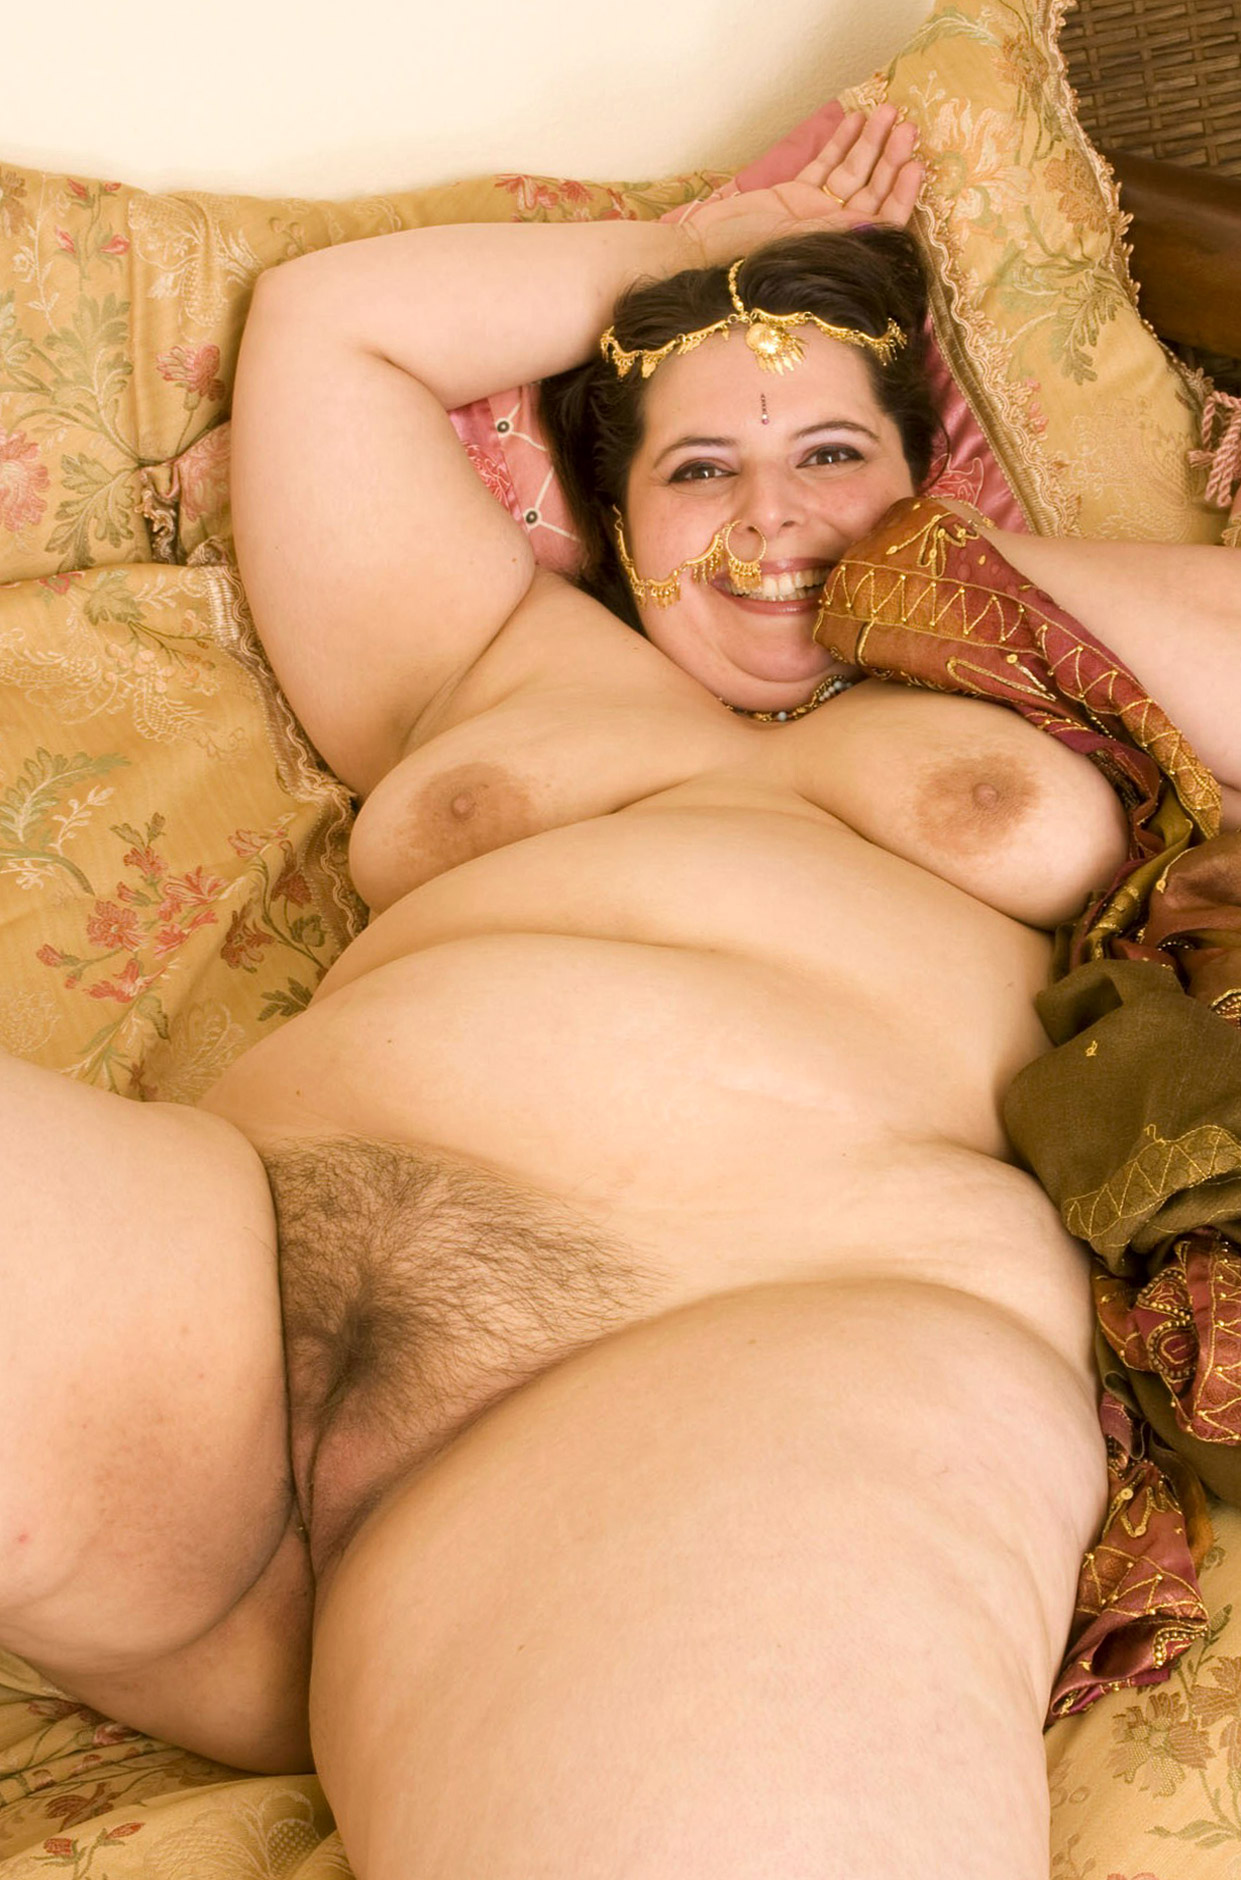 Really.... mature older pussy pics taking very